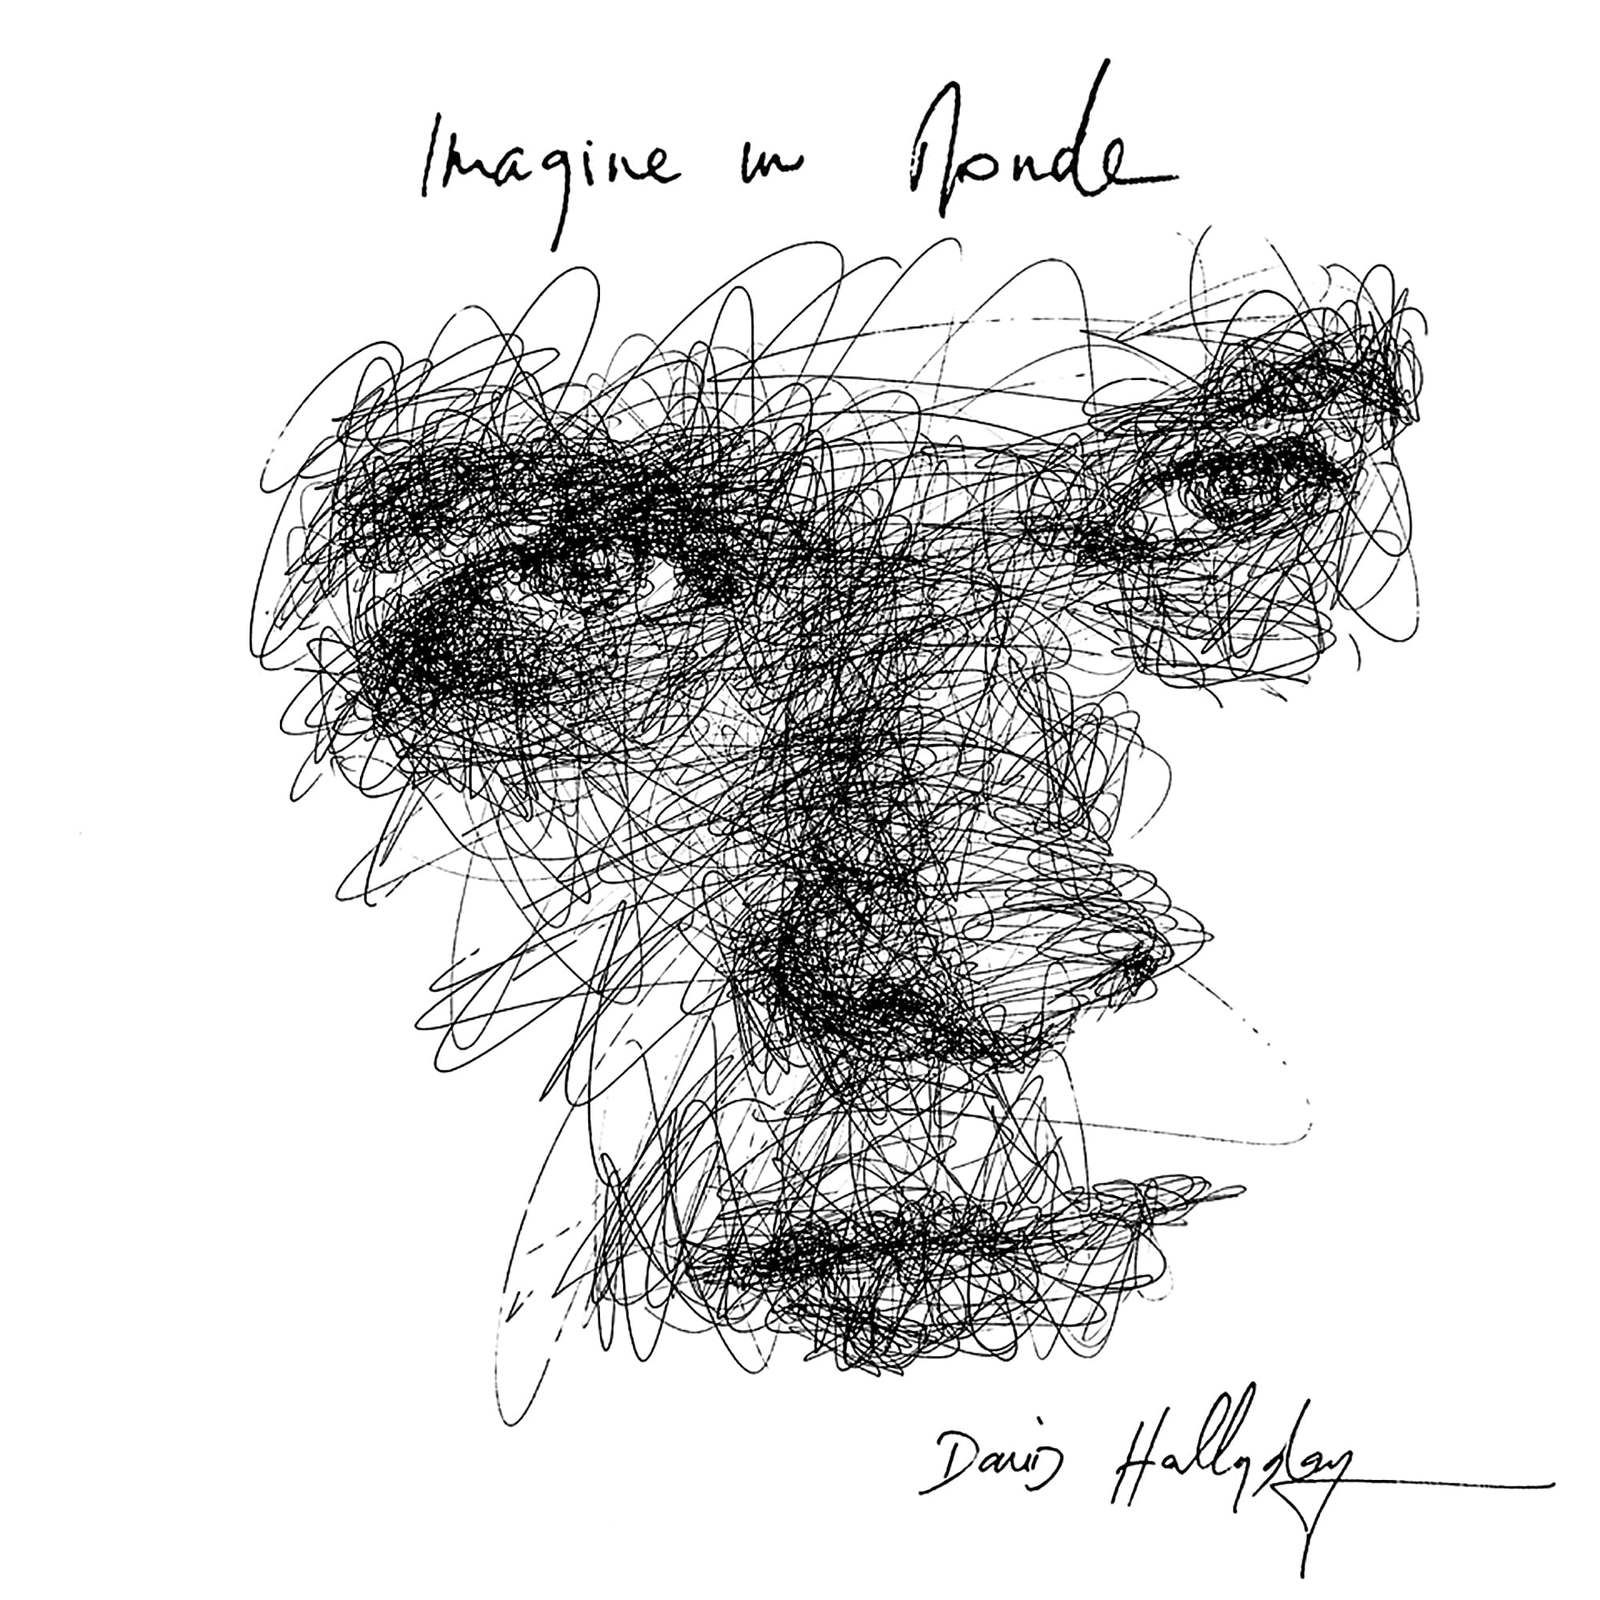 David Hallyday revient avec l'excellent « Imagine Un Monde » !